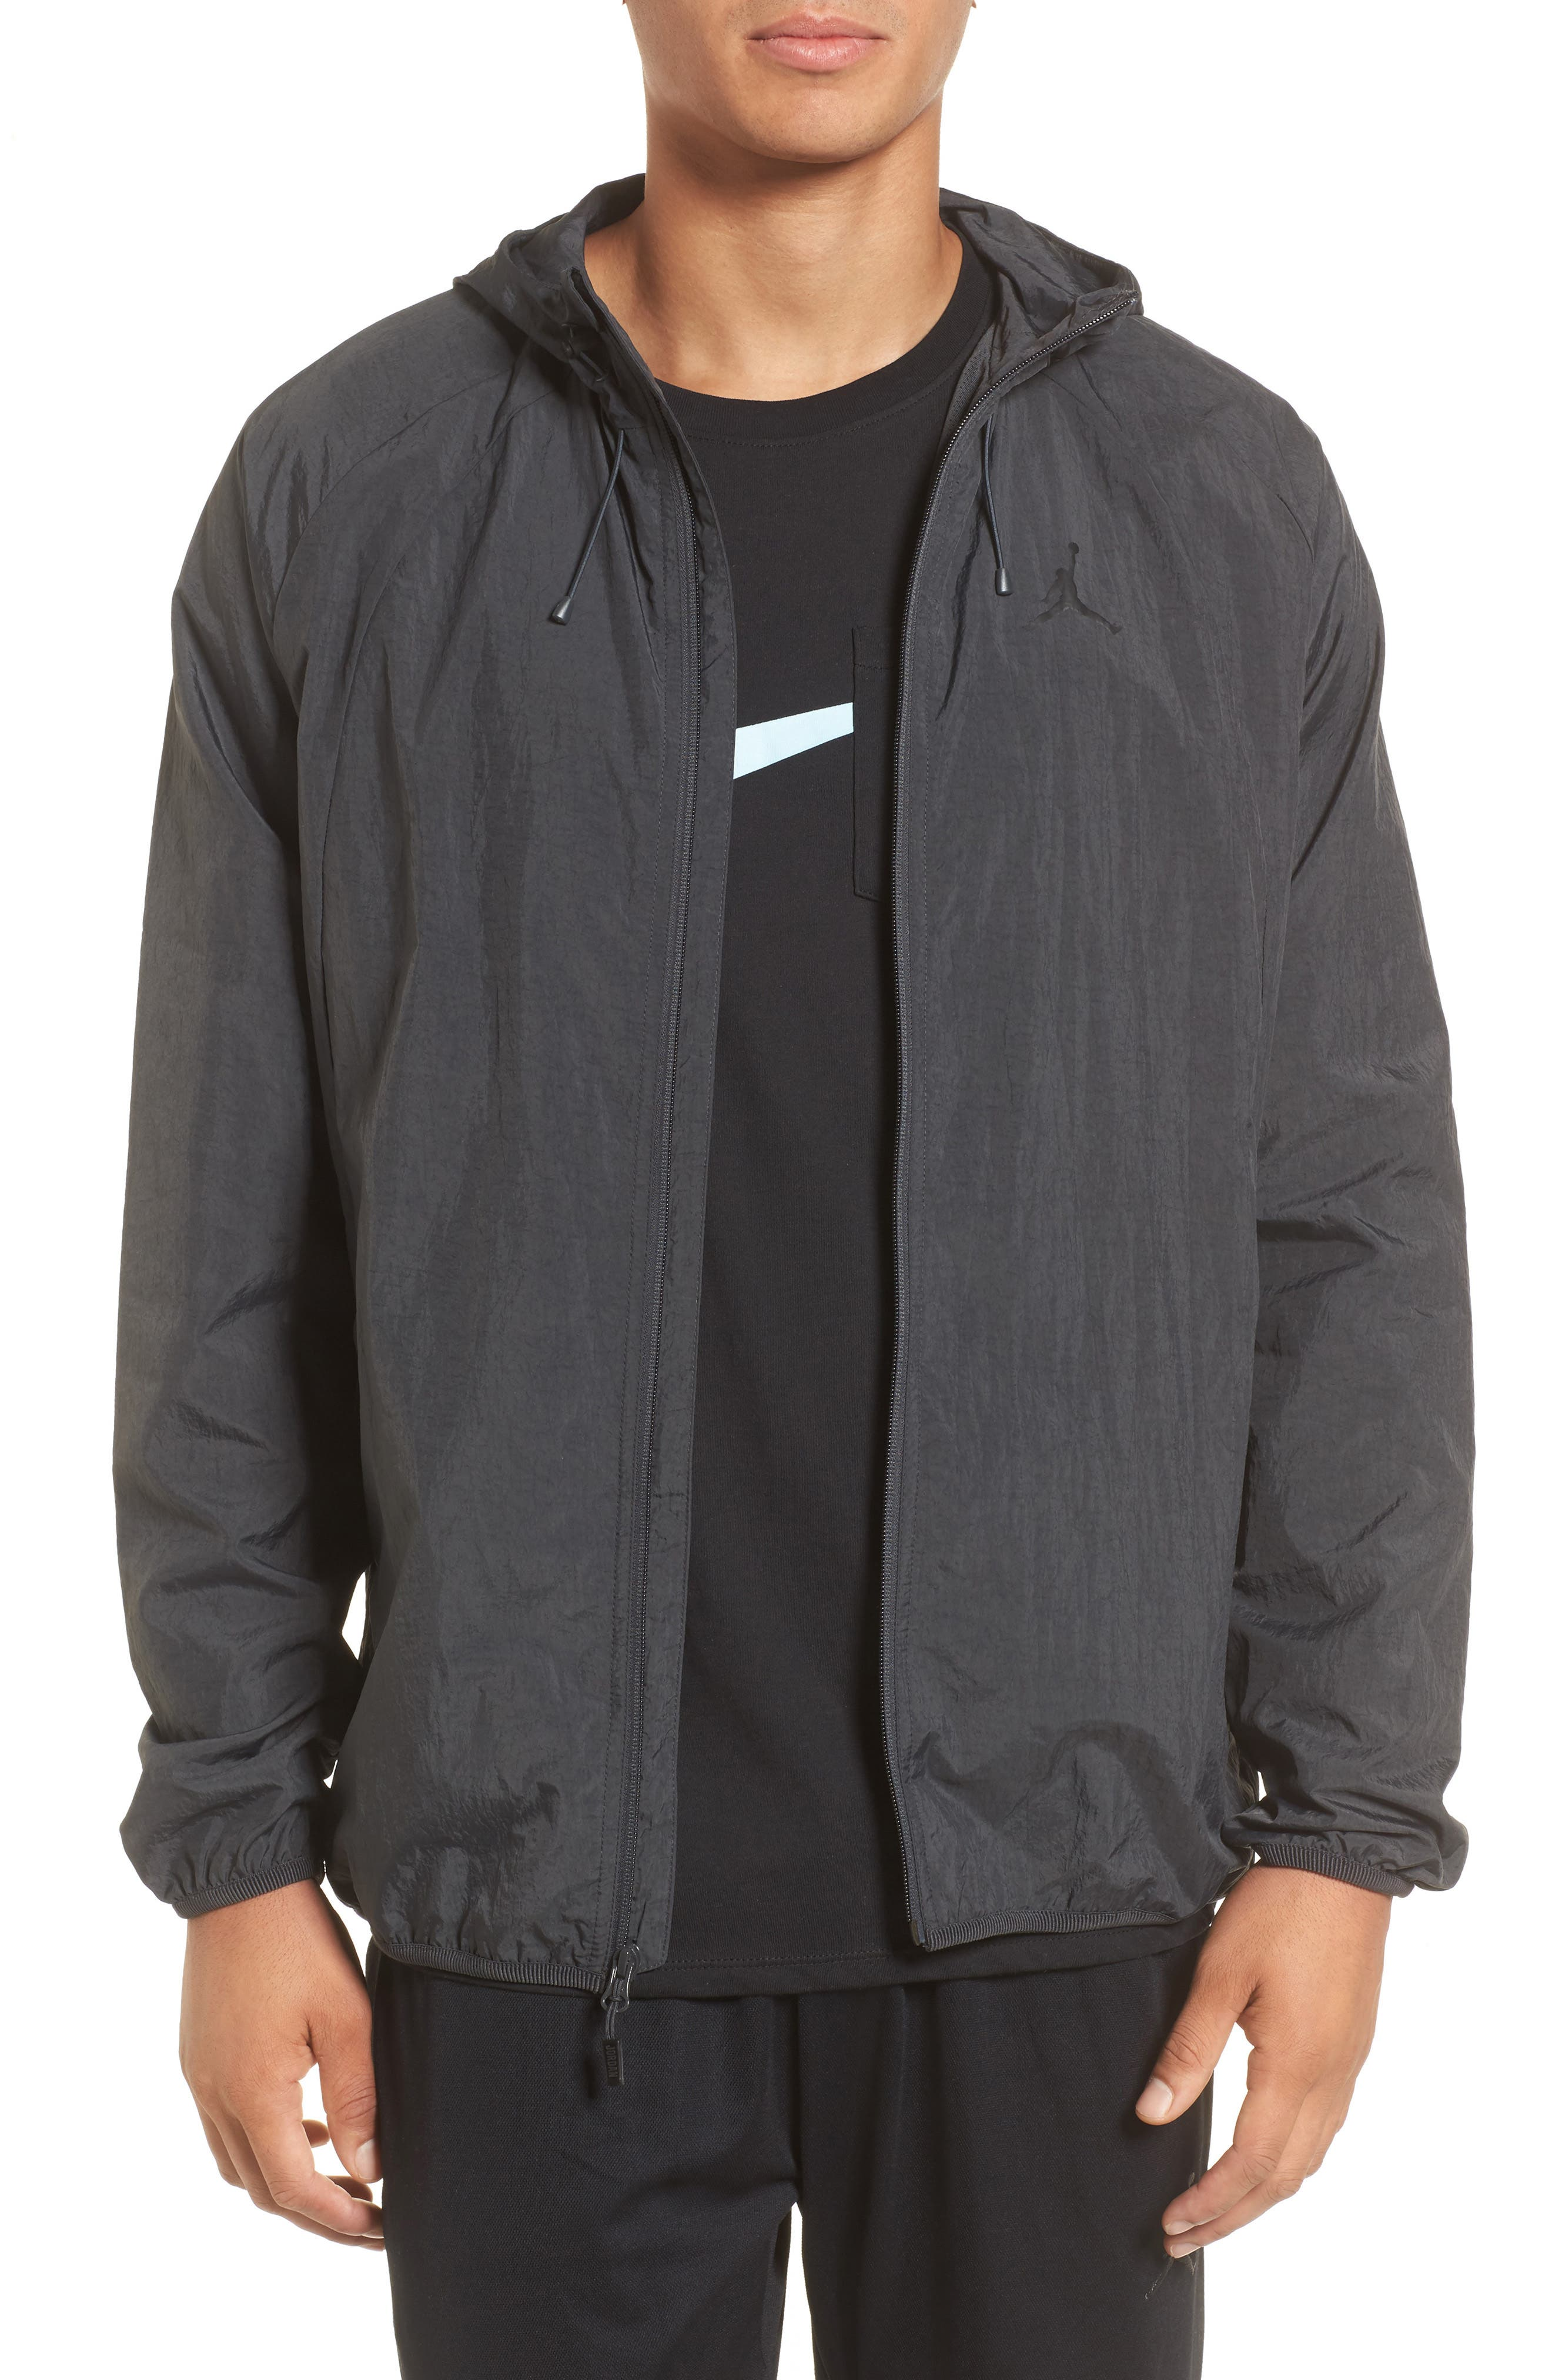 Wings Windbreaker Jacket,                             Main thumbnail 1, color,                             ANTHRACITE